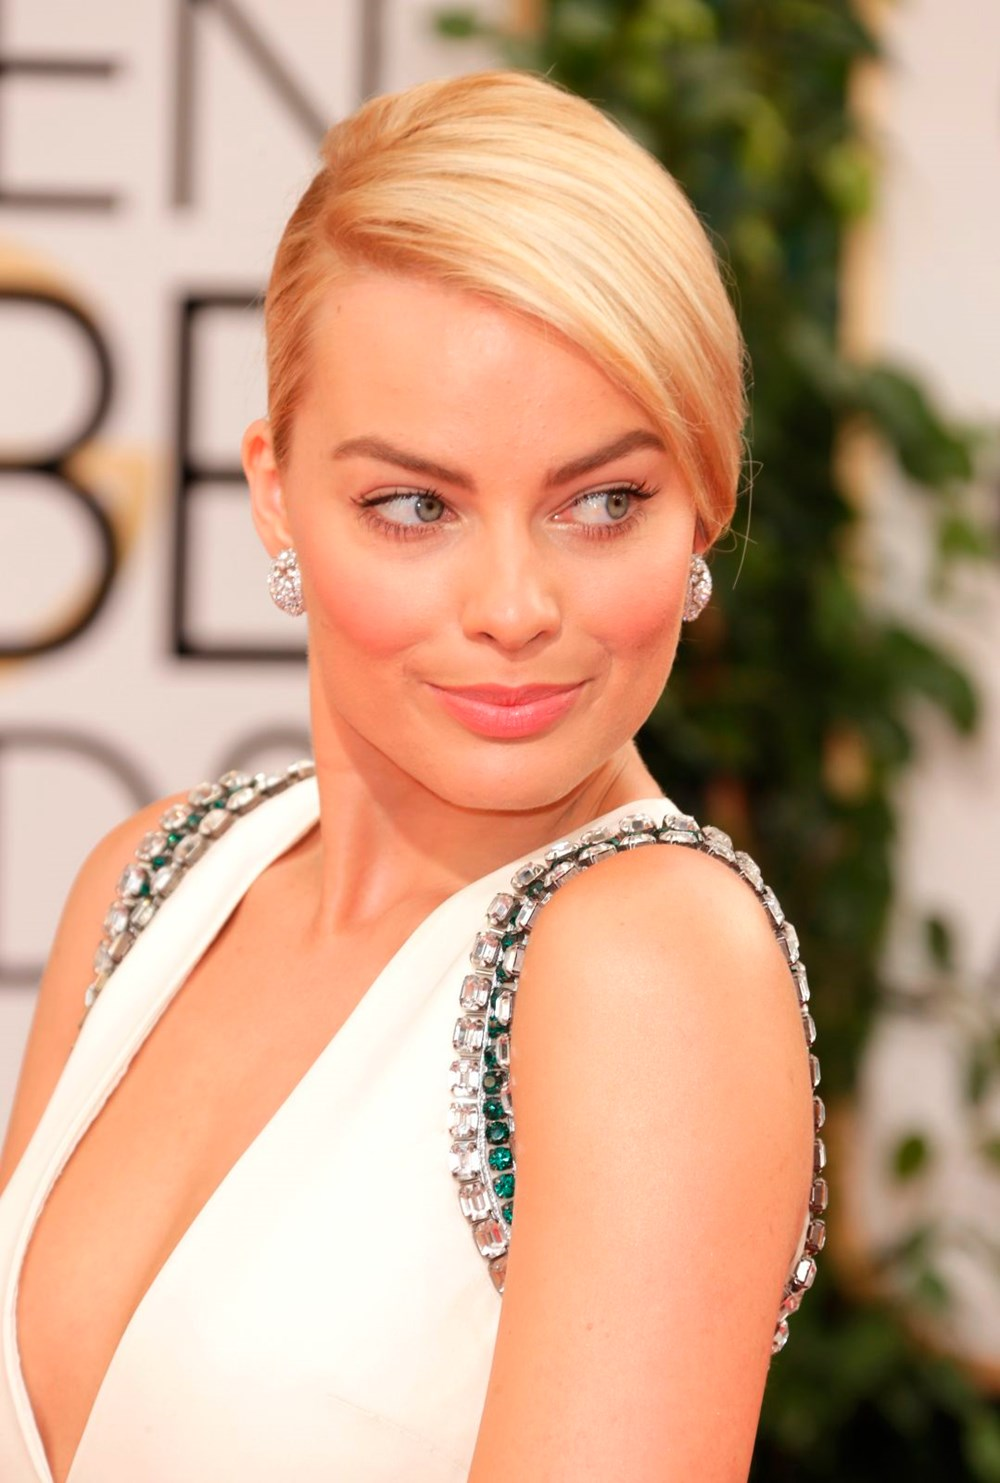 Margot Robbie Hot Revealing Dress Pose - Margot Robbie Net Worth, Pics, Wallpapers, Career and Biography